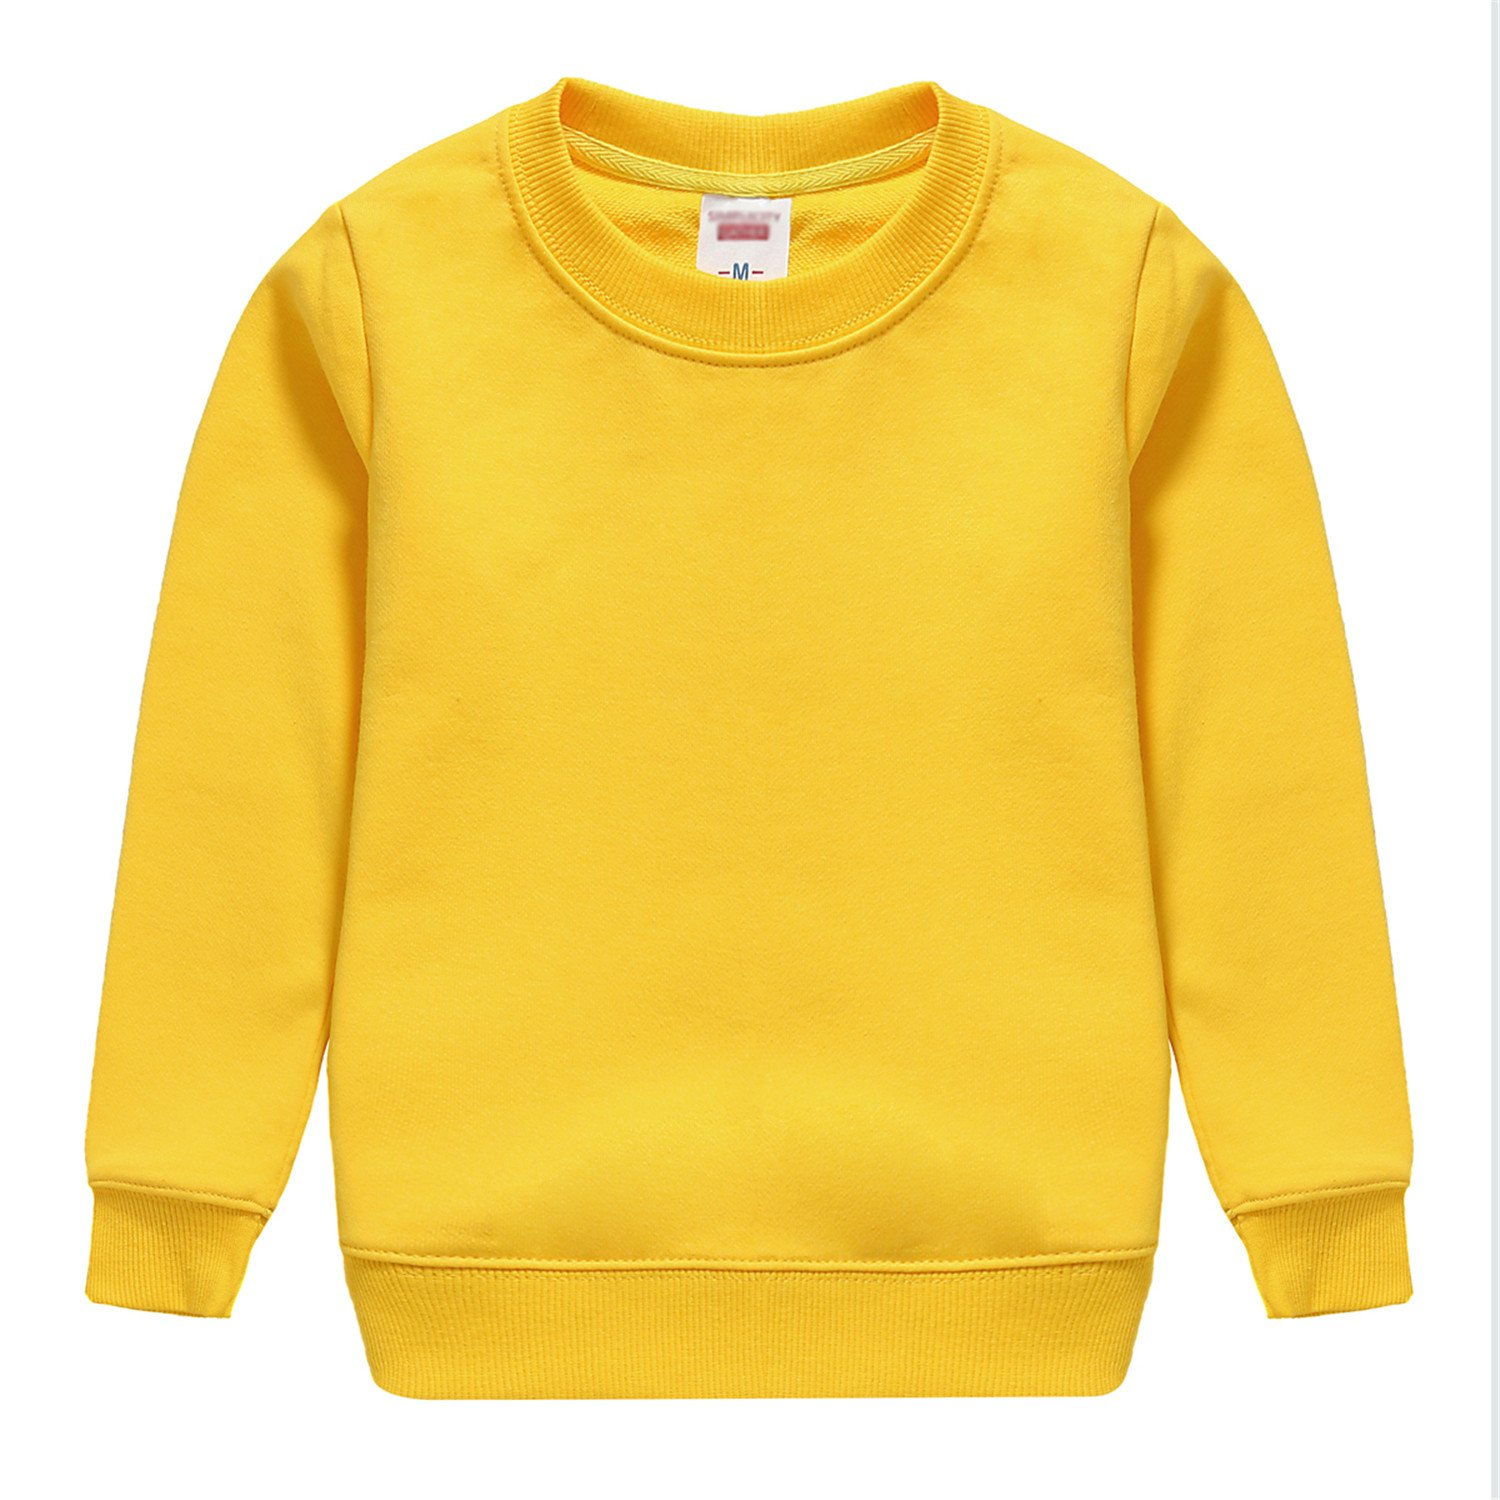 Beautymade Solid Full Sleeve Sweatshirt Child Warm Casual Clothing Yellow 5T